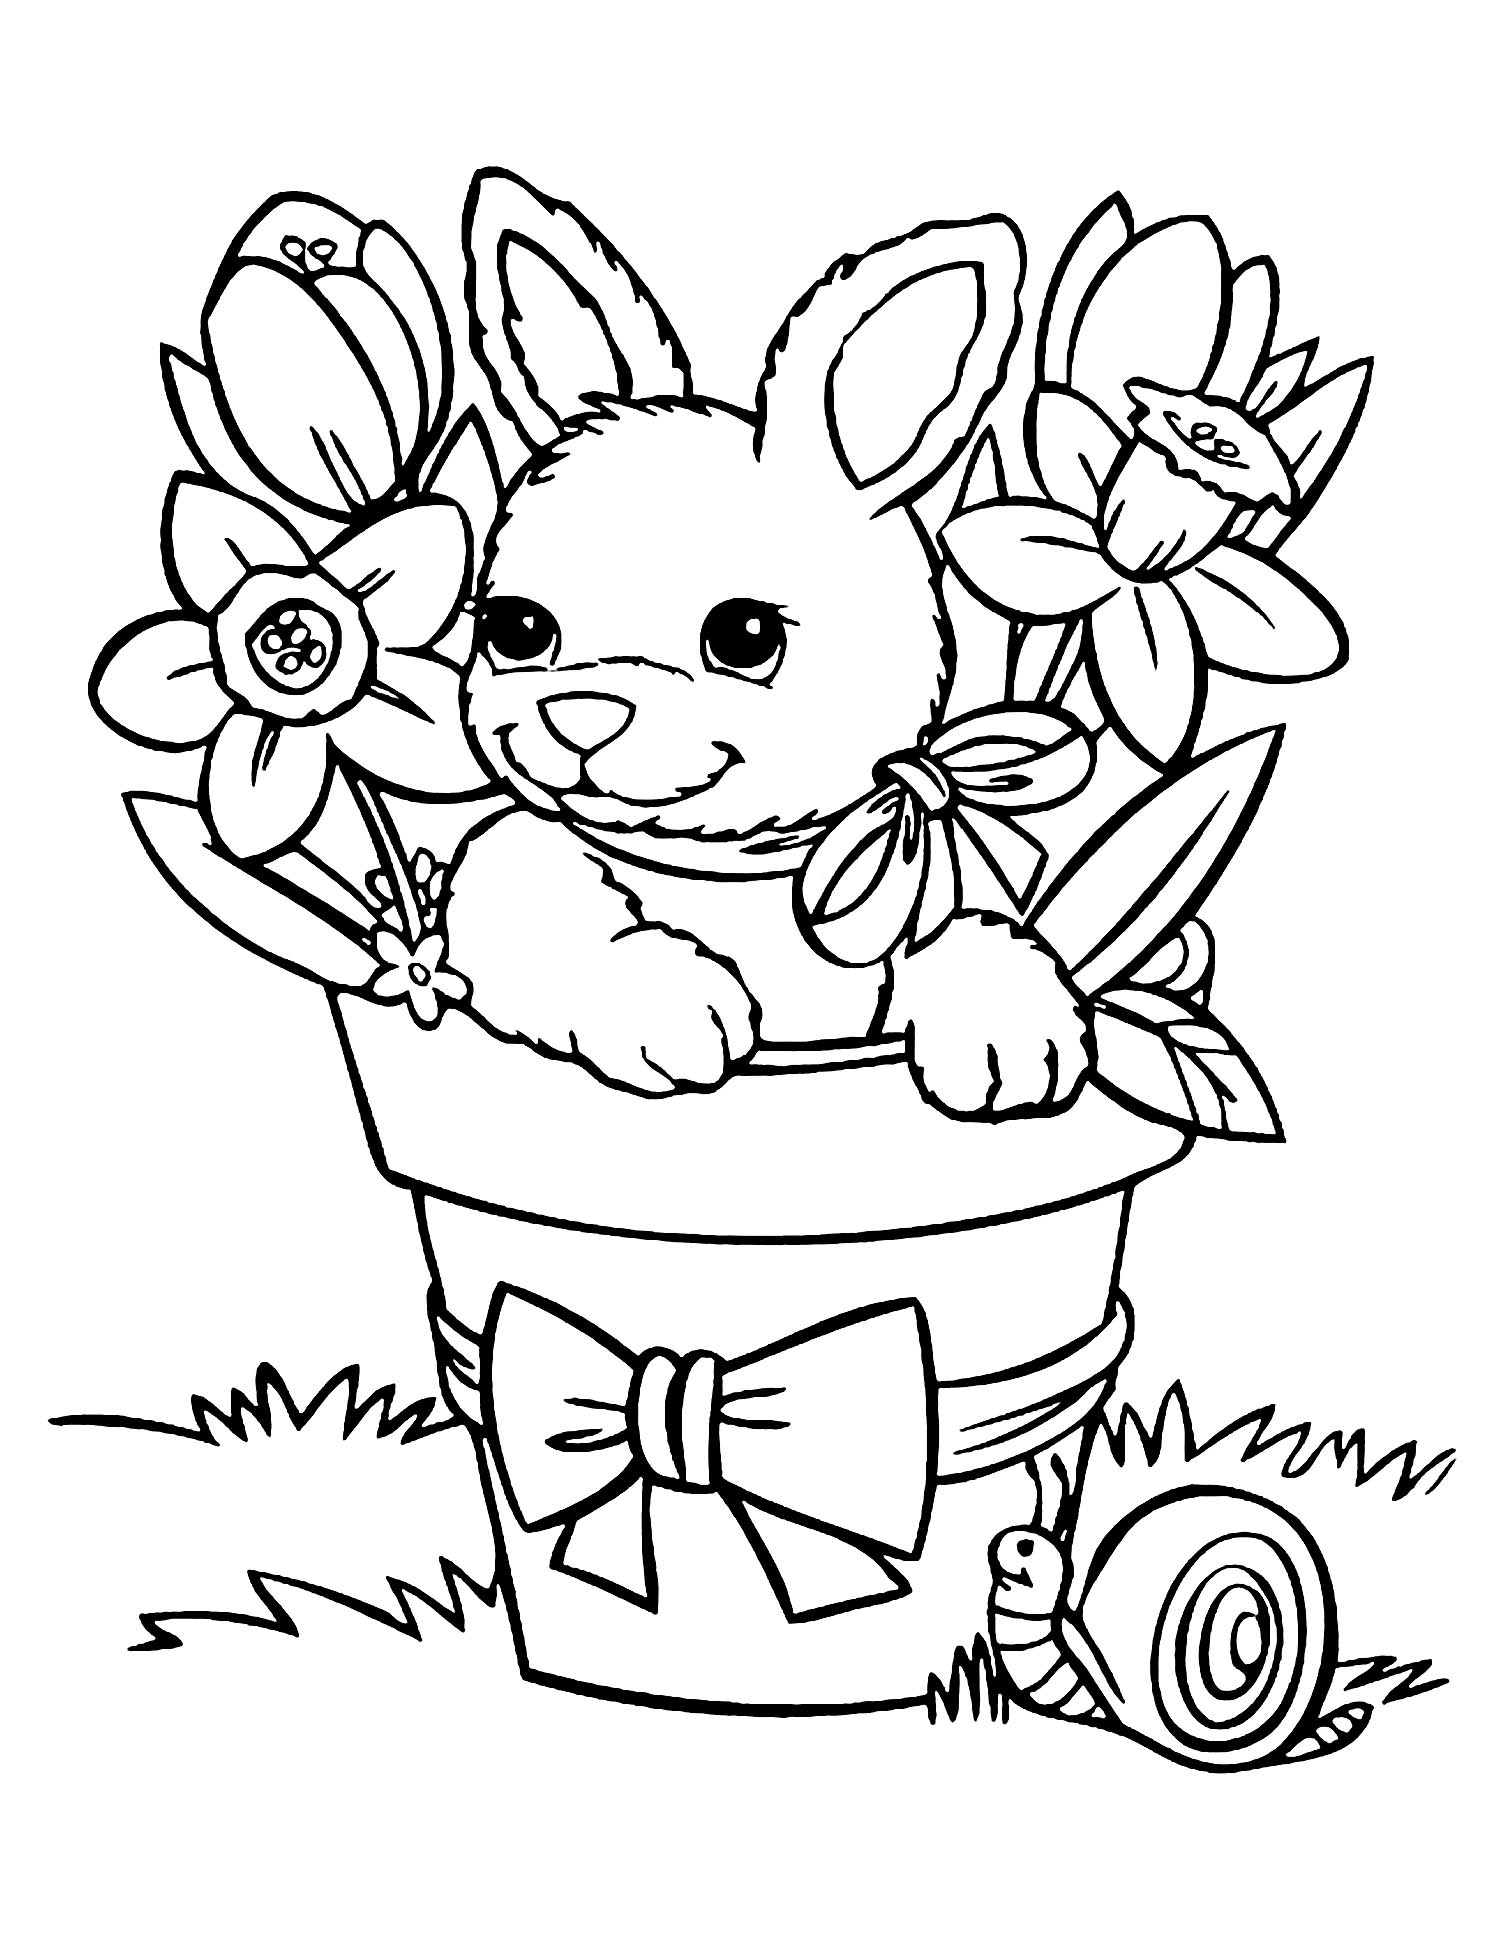 Rabbit to download for free - Rabbit Kids Coloring Pages